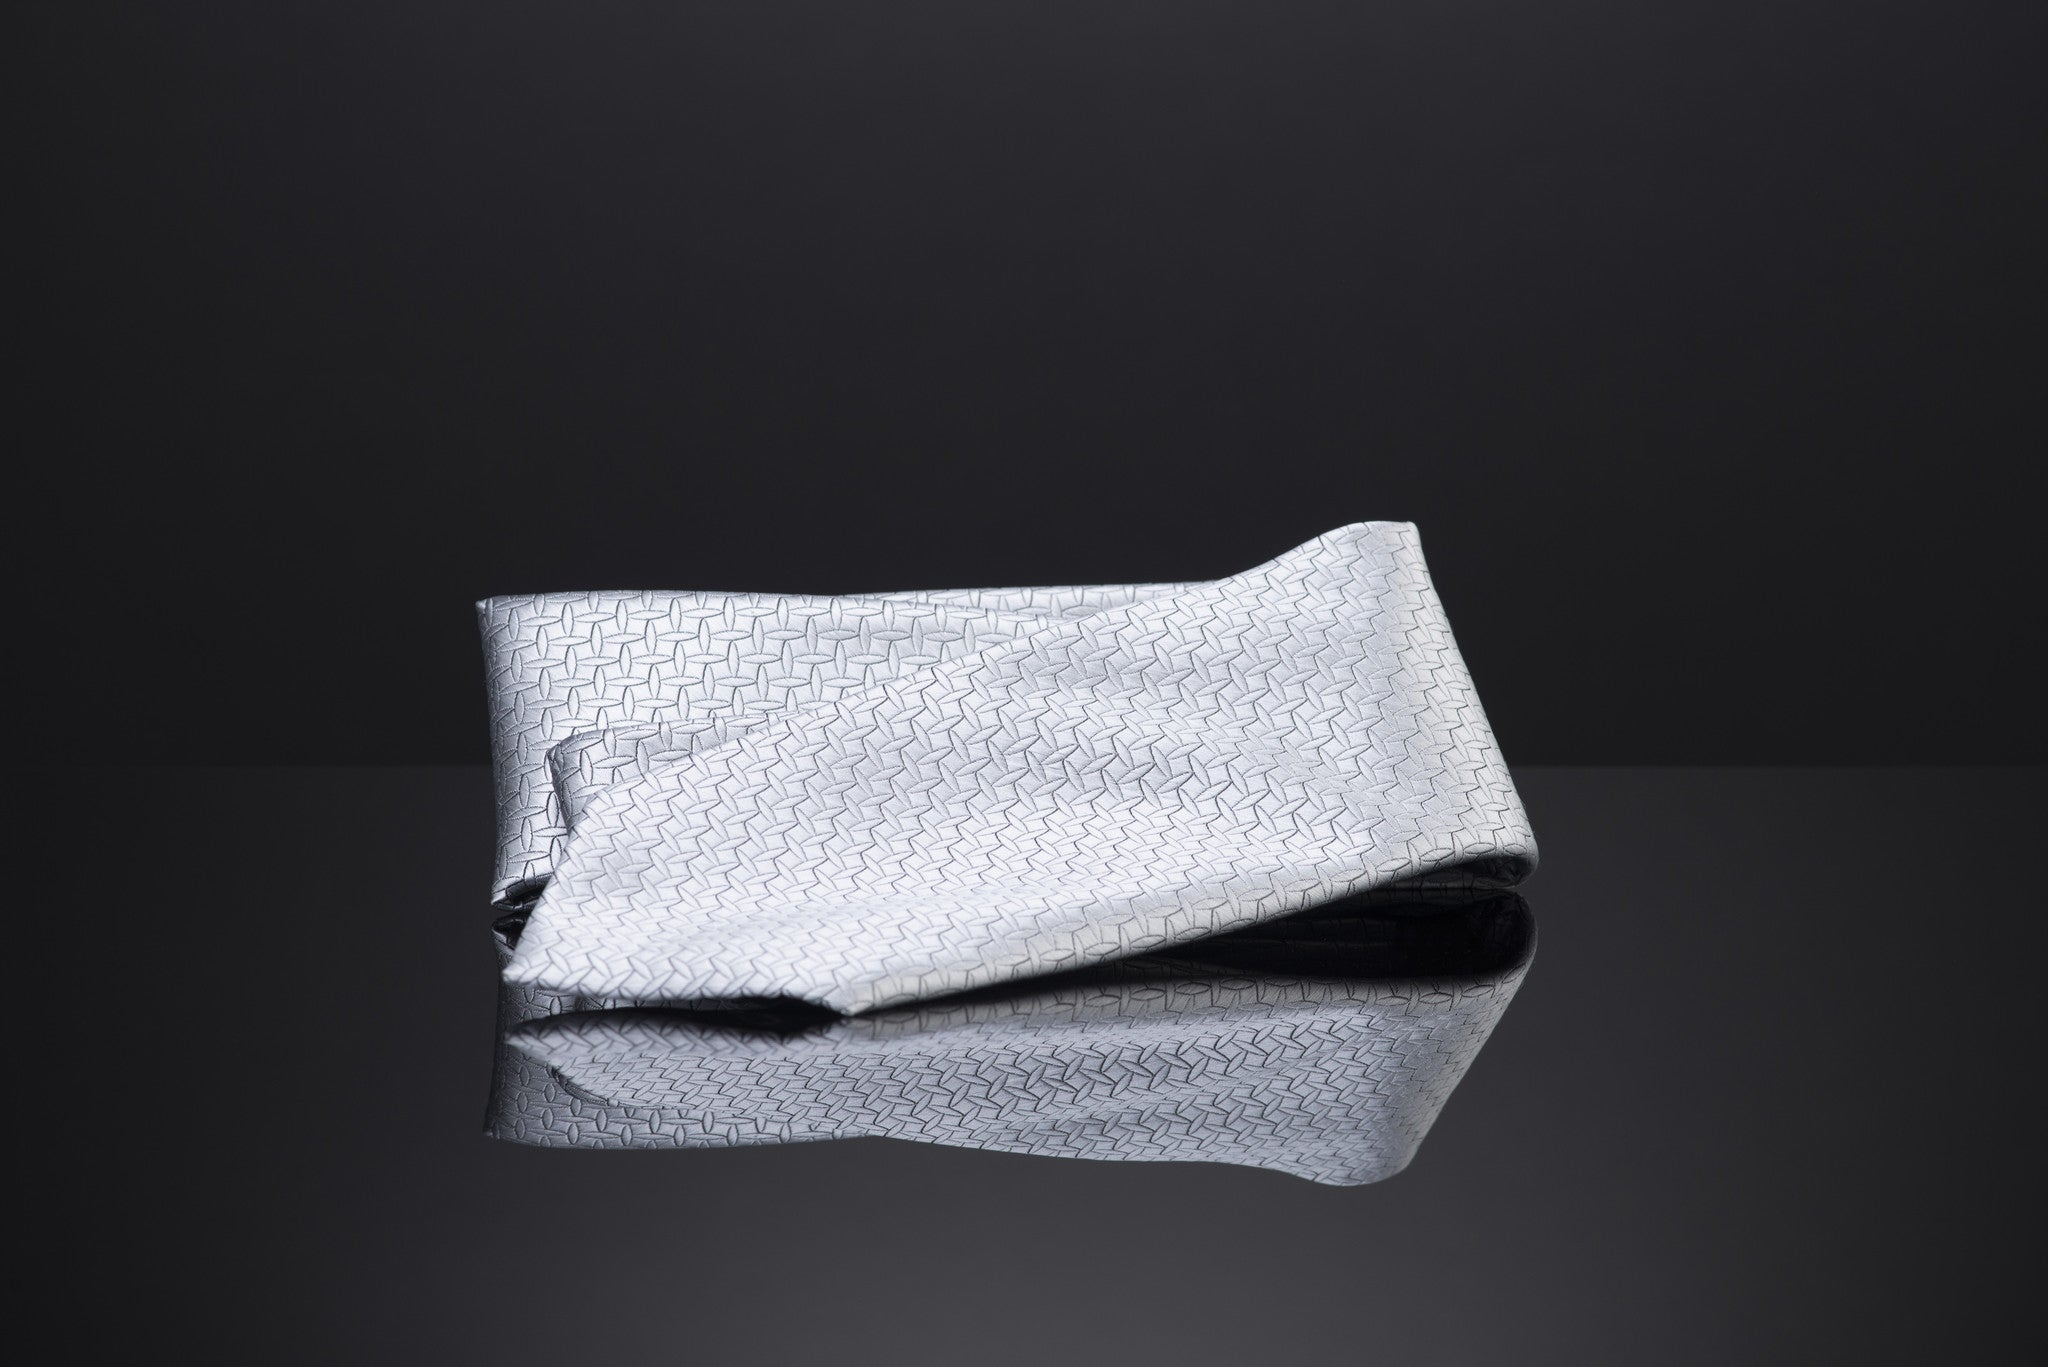 Christian Grey's Tie by Fifty Shades of Grey